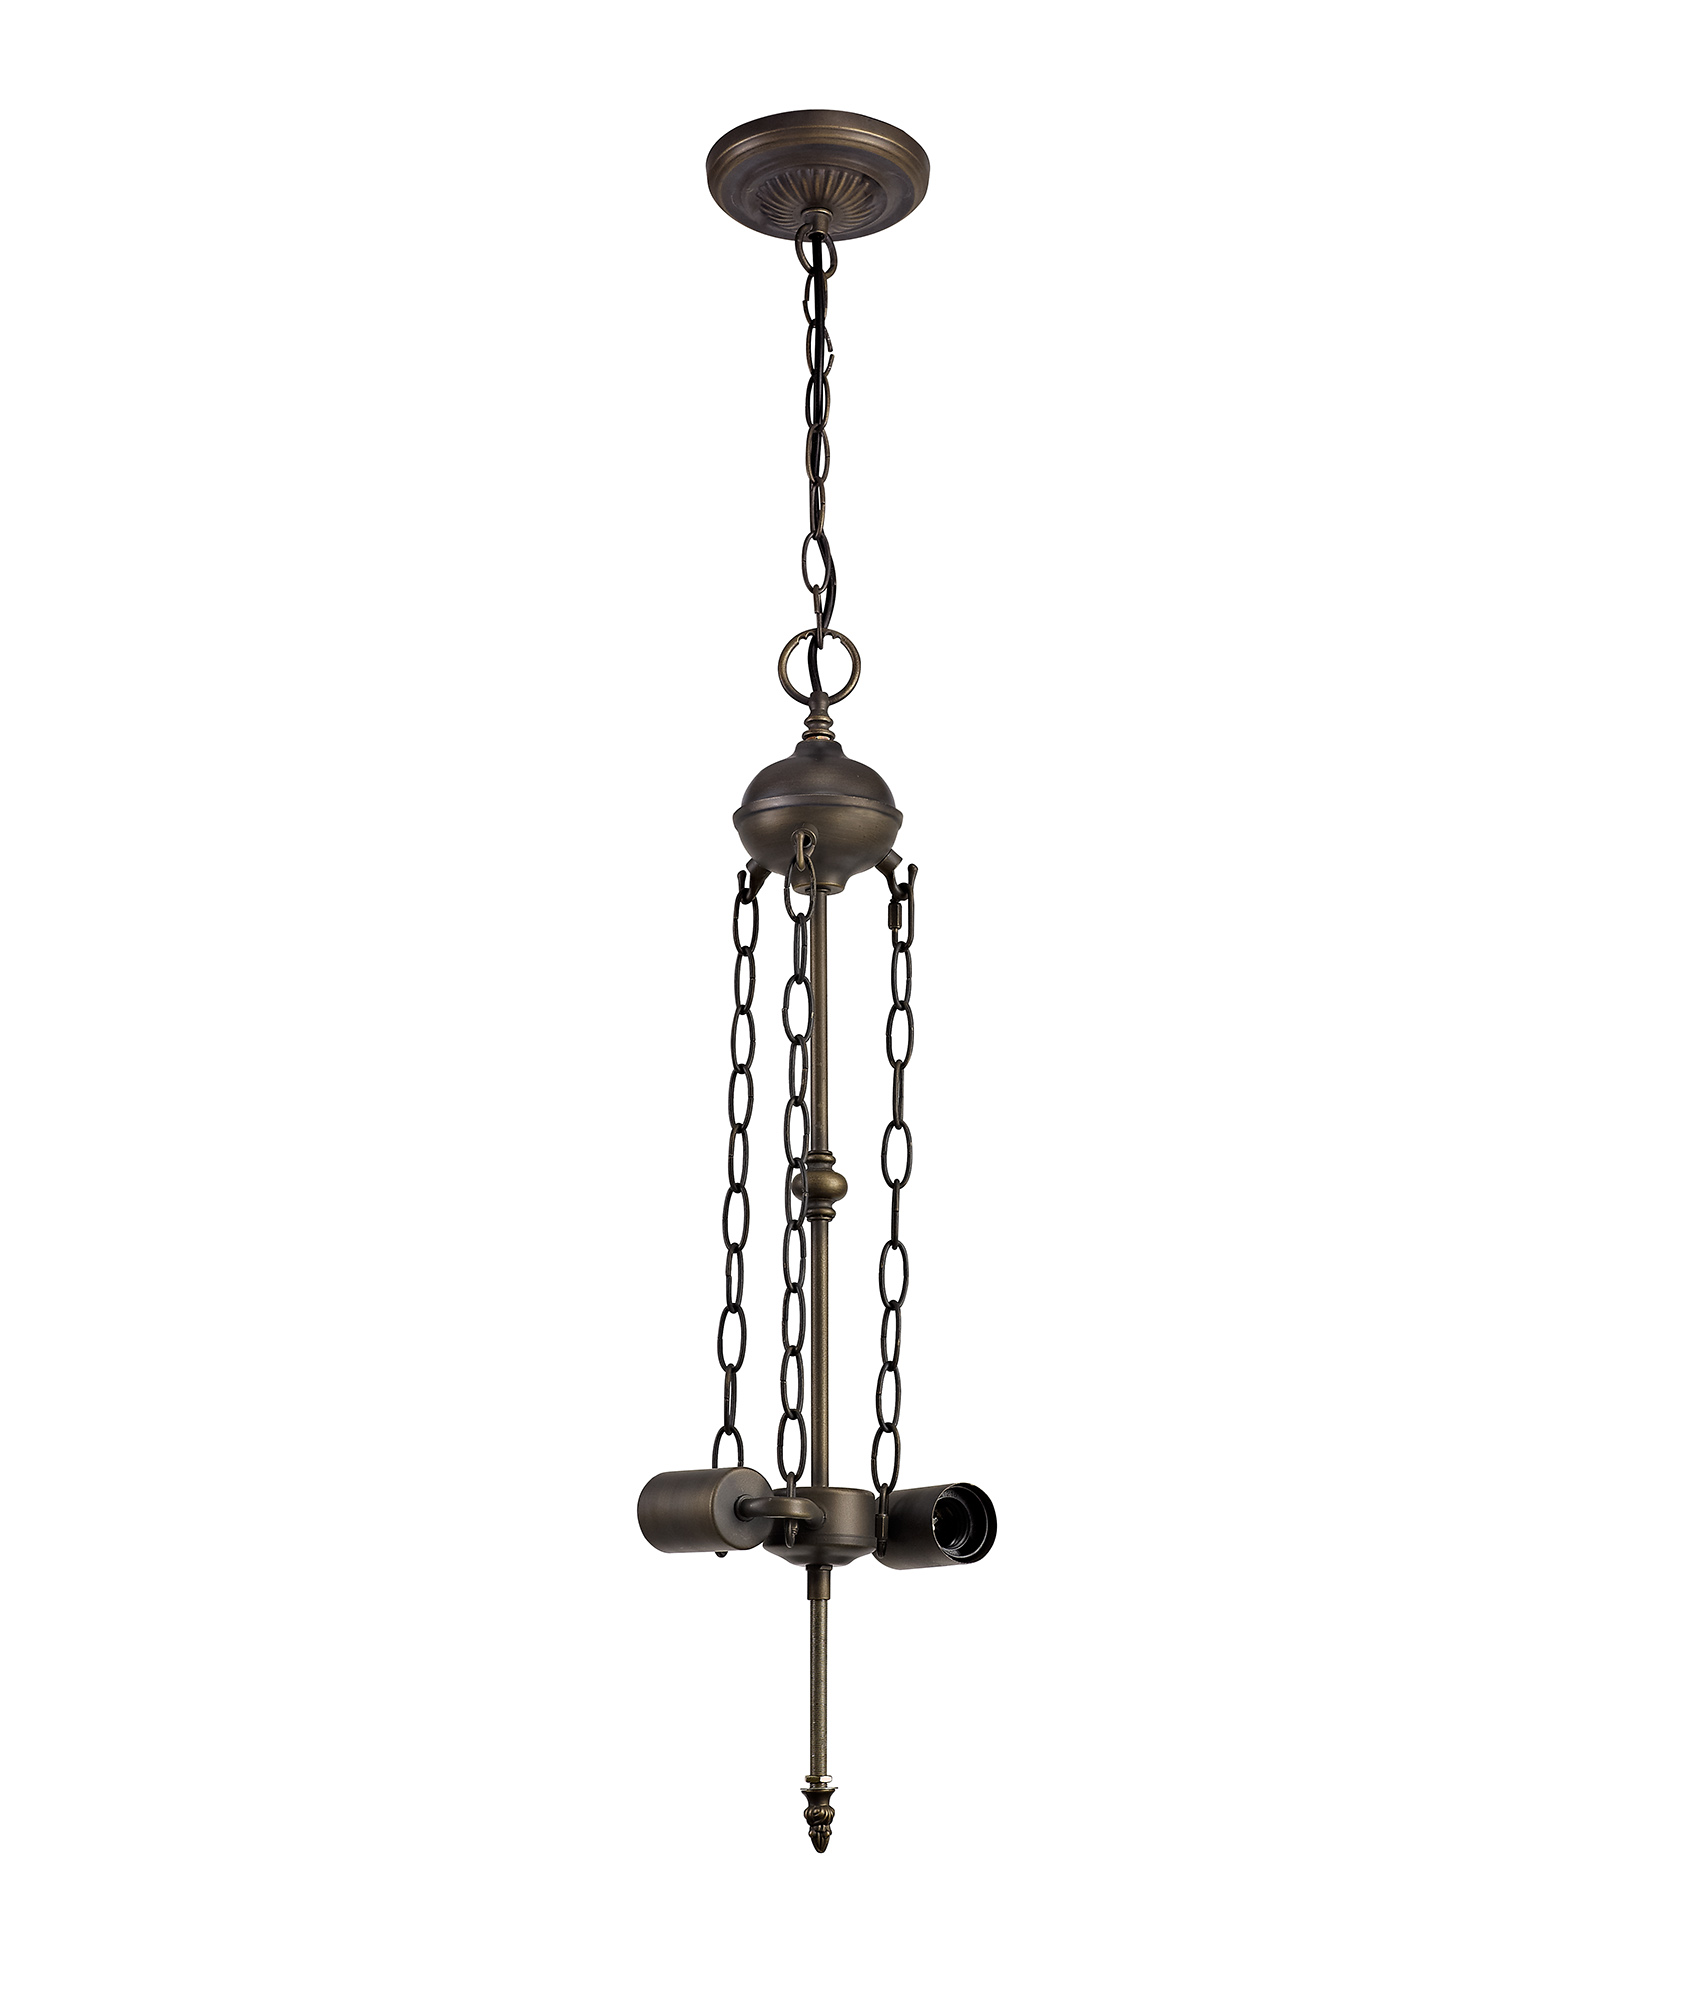 Uplighter Suspension Kit, 2 x E27, Aged Antique Brass